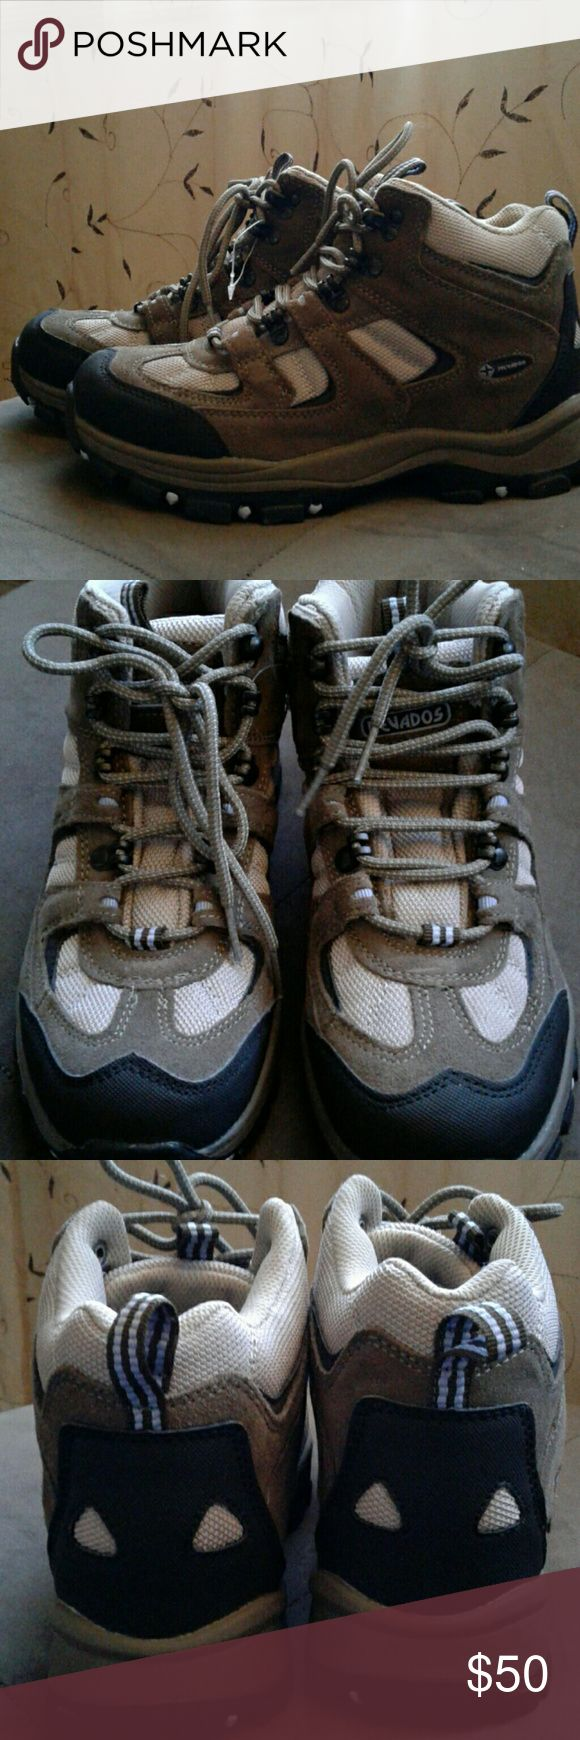 Nevados hiking boots Brand new nevados hiking boots with lavender detail. 7.5 ideal for wide feet Nevados Shoes Athletic Shoes